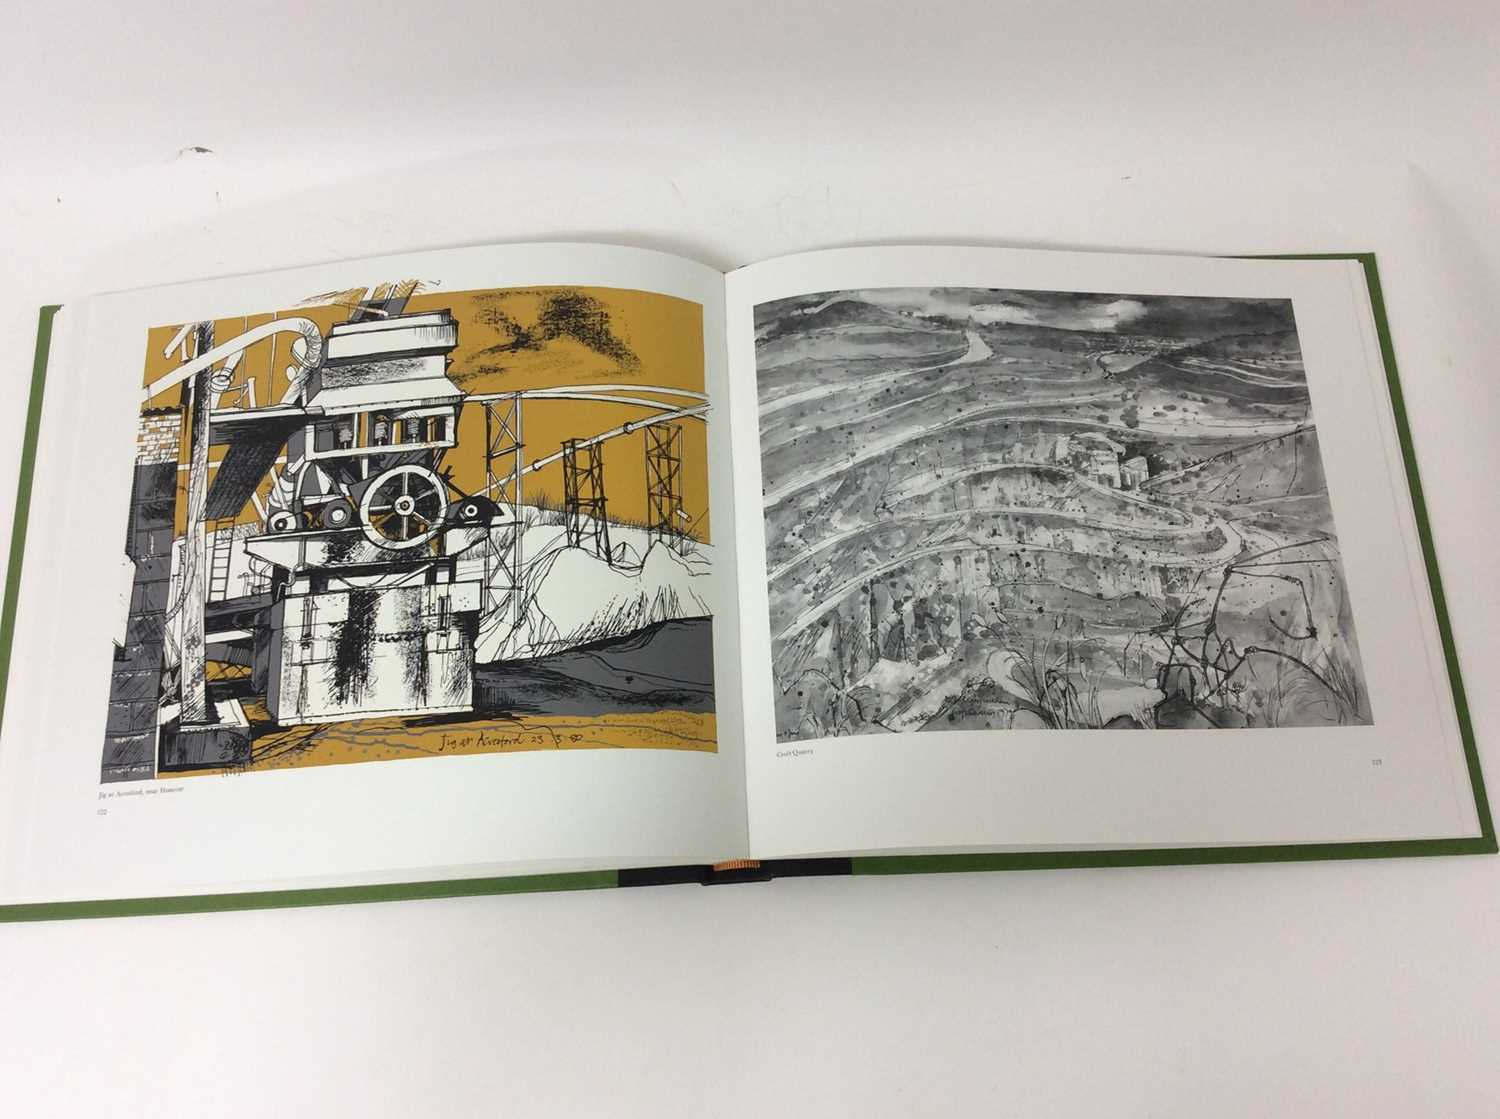 Rigby Graham, Leicestershire, Sycamore Press / Gadsby Gallery, Leicester 1980, folio book in slip co - Image 9 of 10